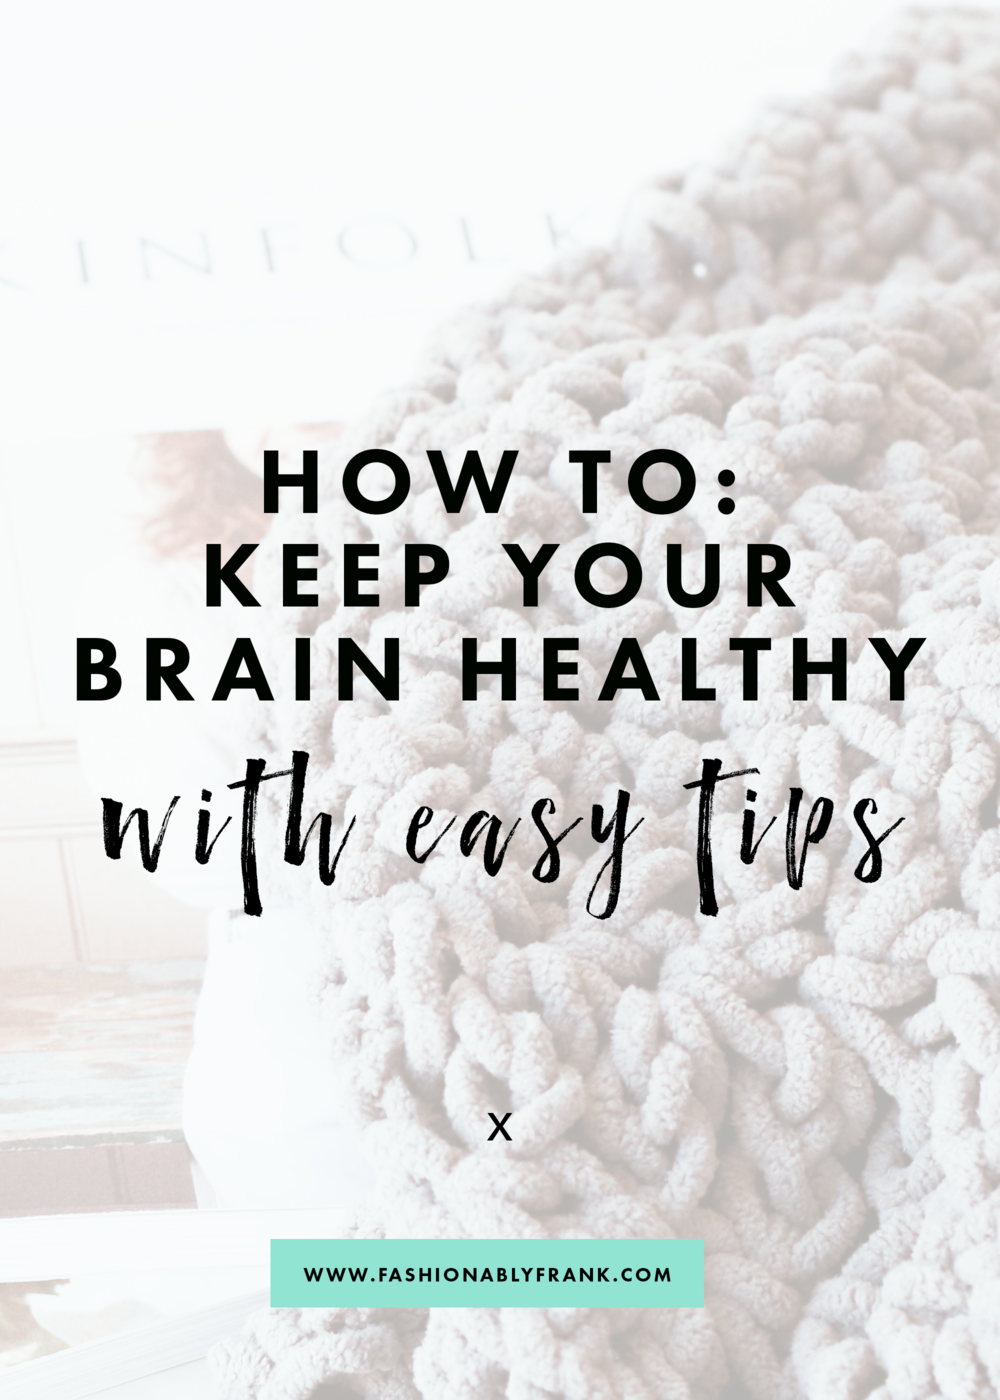 How to Keep Your Brain Healthy